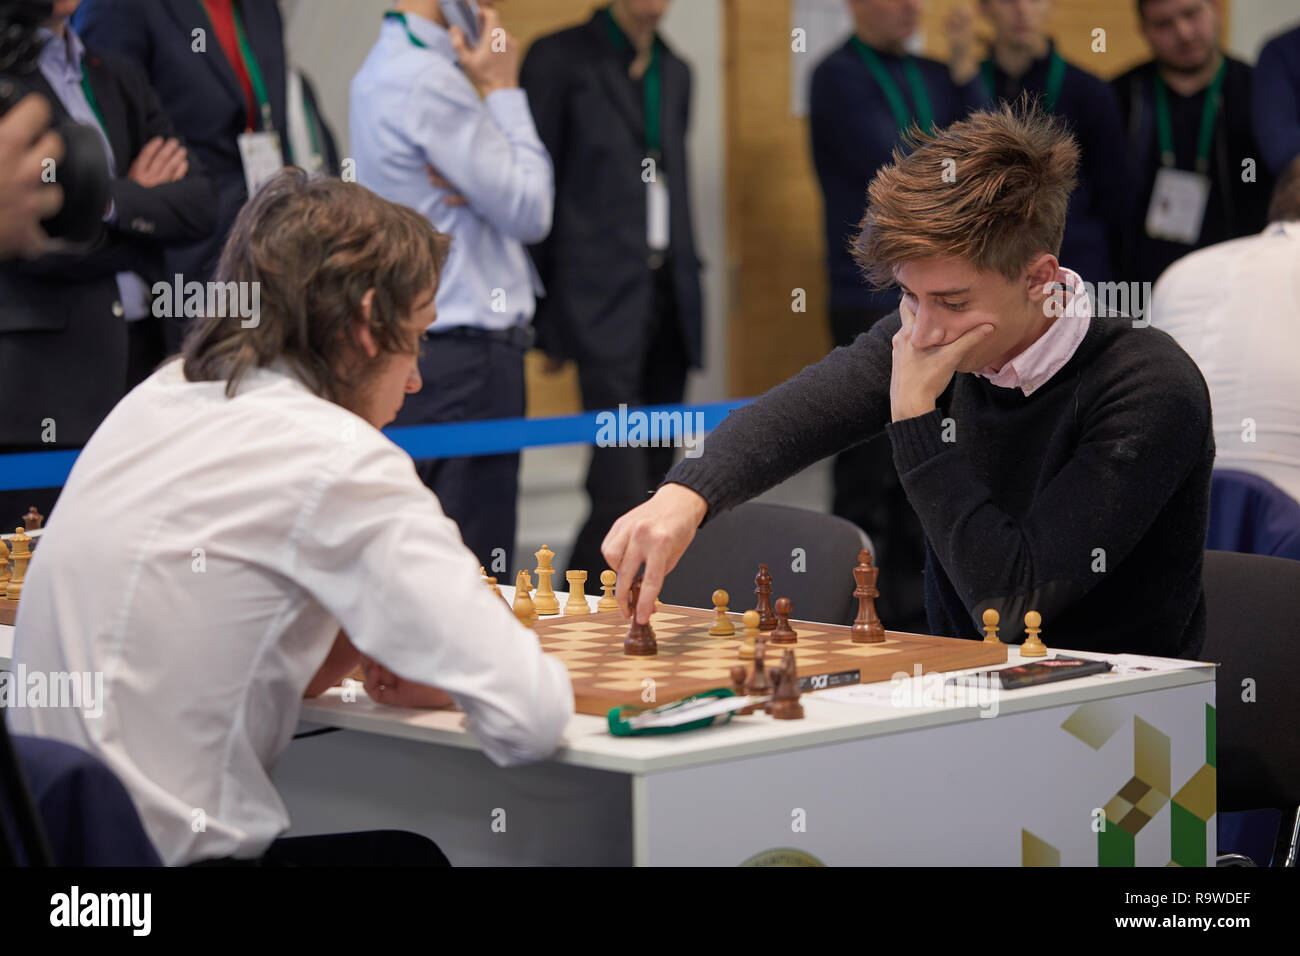 Grandmaster Stock Photos & Grandmaster Stock Images - Alamy